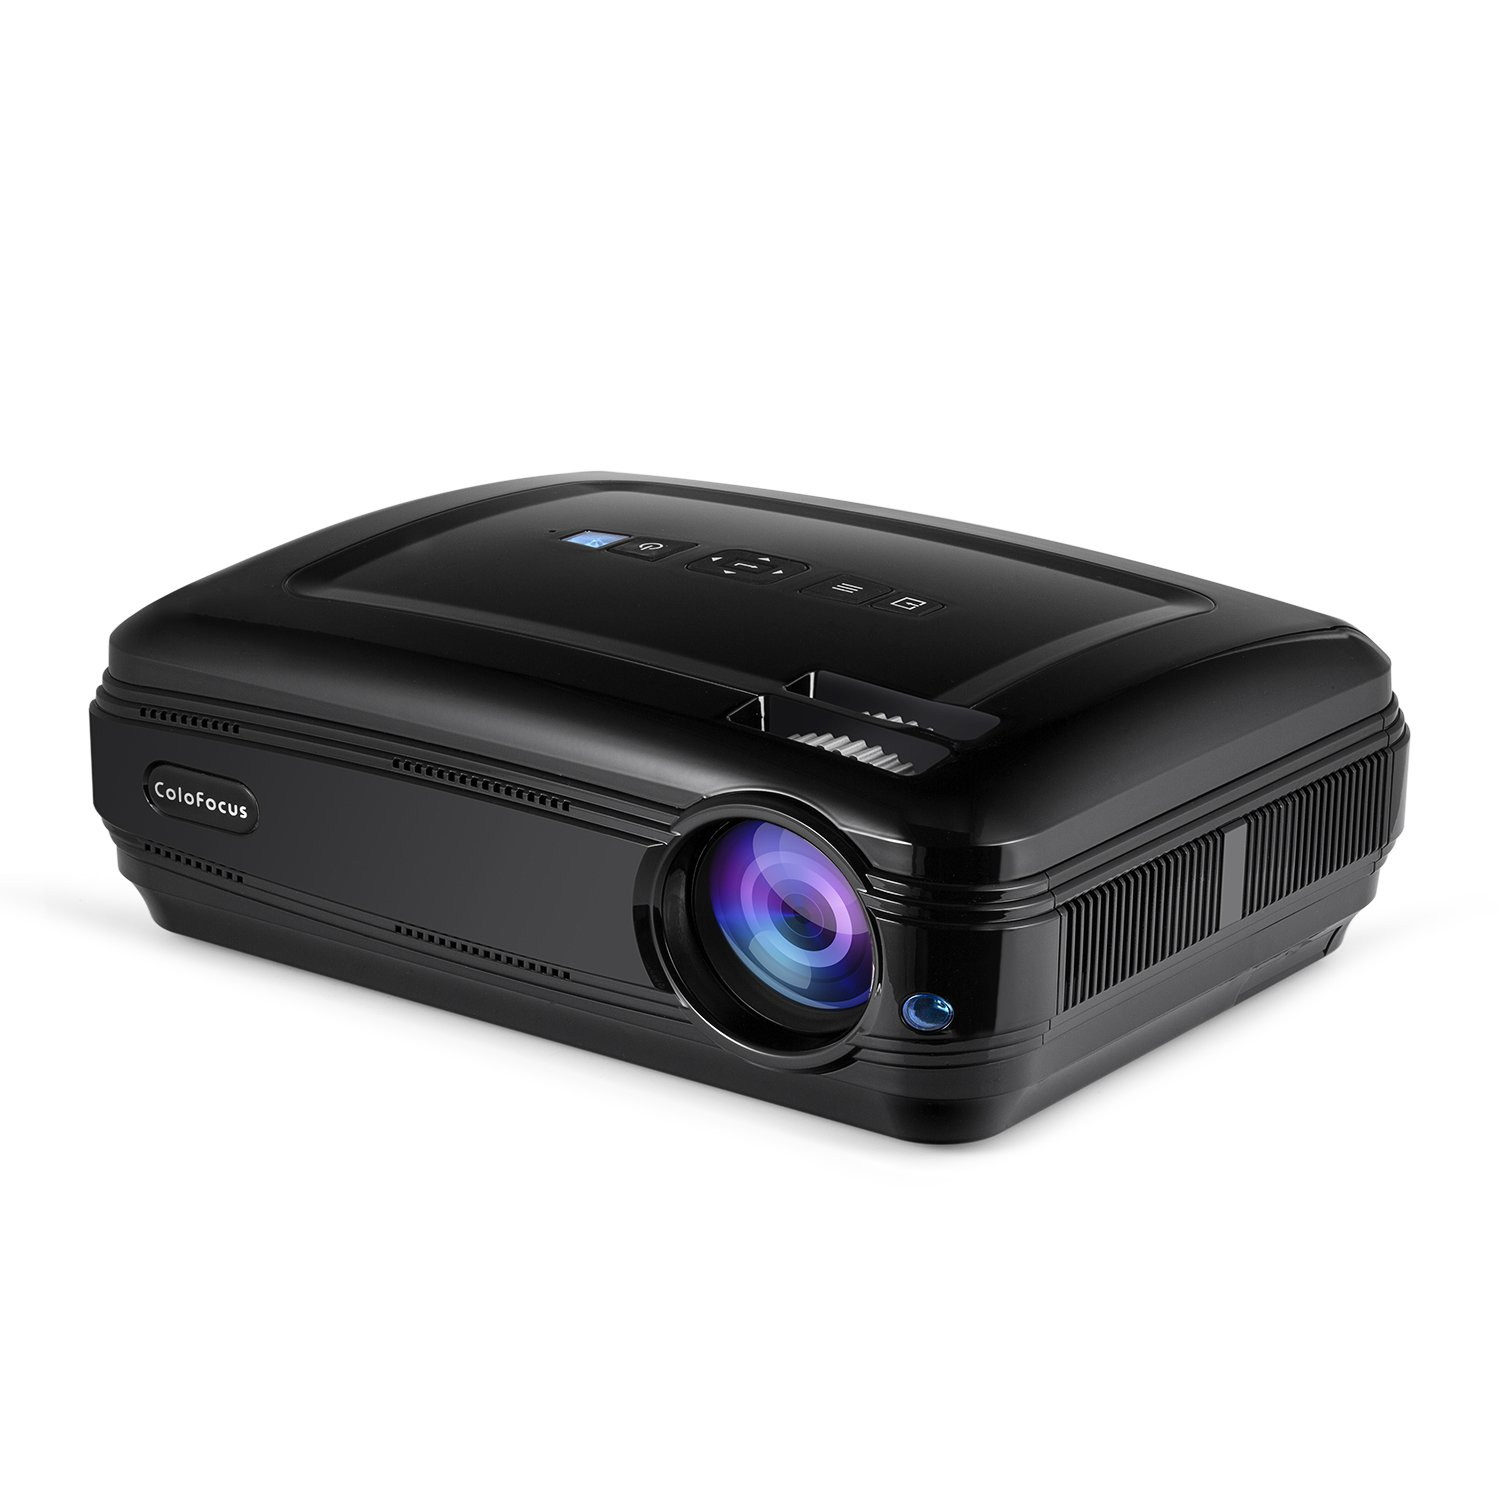 Projector, Home Video HD Projector with 1080P Supported, 1280x768 Resolution LCD Projectors for Home Cinema Theater/Computer/TV/Laptop/Gaming/SD/iPad iPhone/Android Smartphone